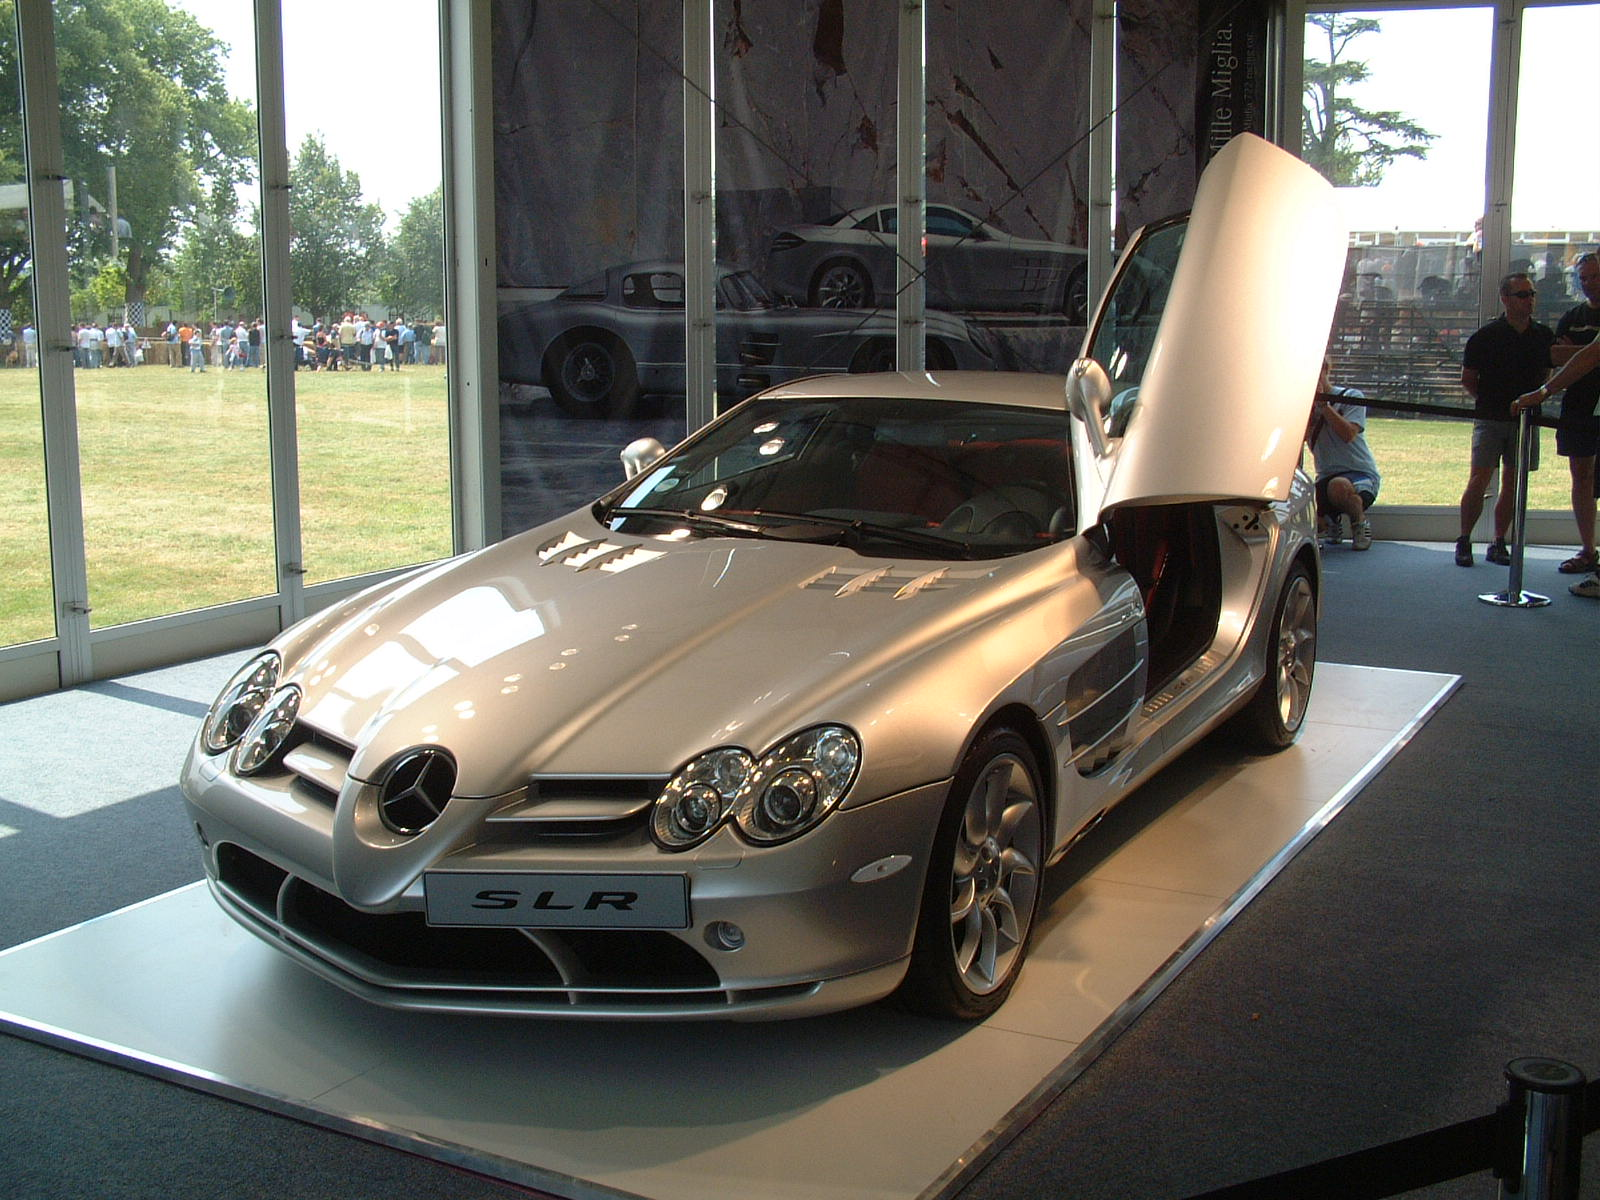 Goodwood Festival of Speed Mercedes-Benz SLR